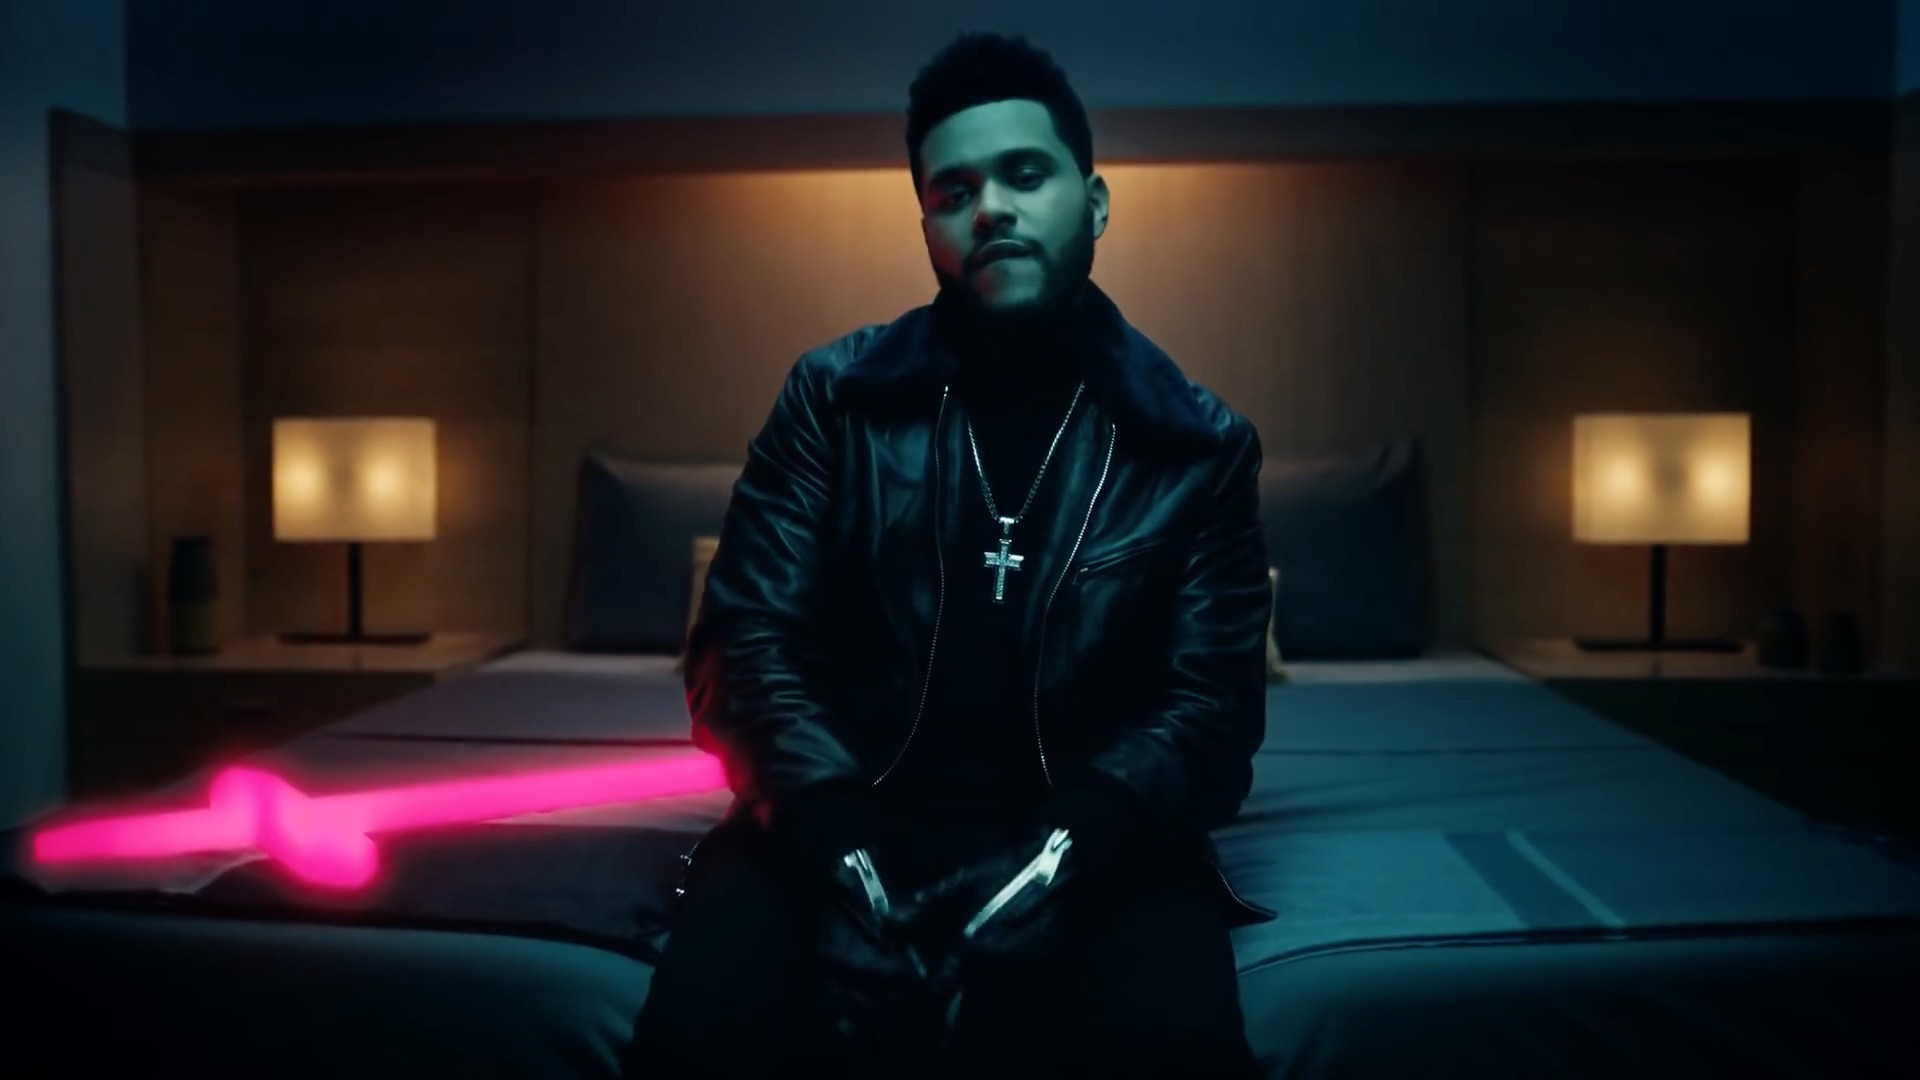 the-weeknd-lit-croix